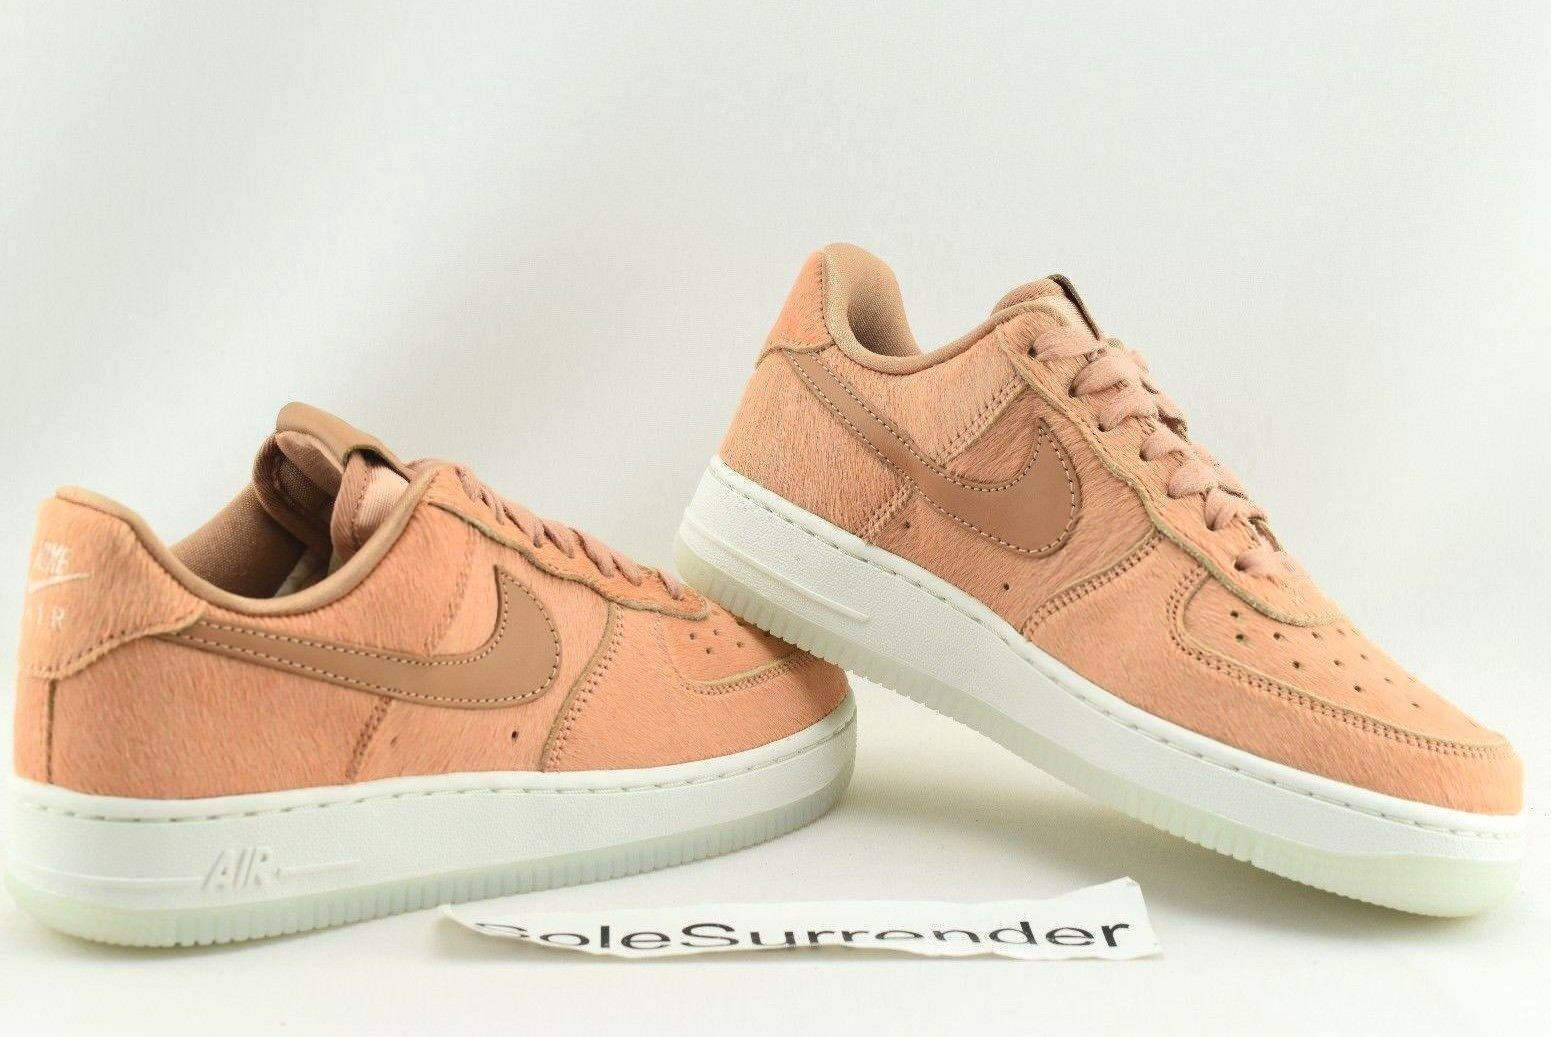 Nike Air Force 1 '07 LX - SIZE 6.5- 898889-800 Pony Horse Hair Wheat Flax Orange